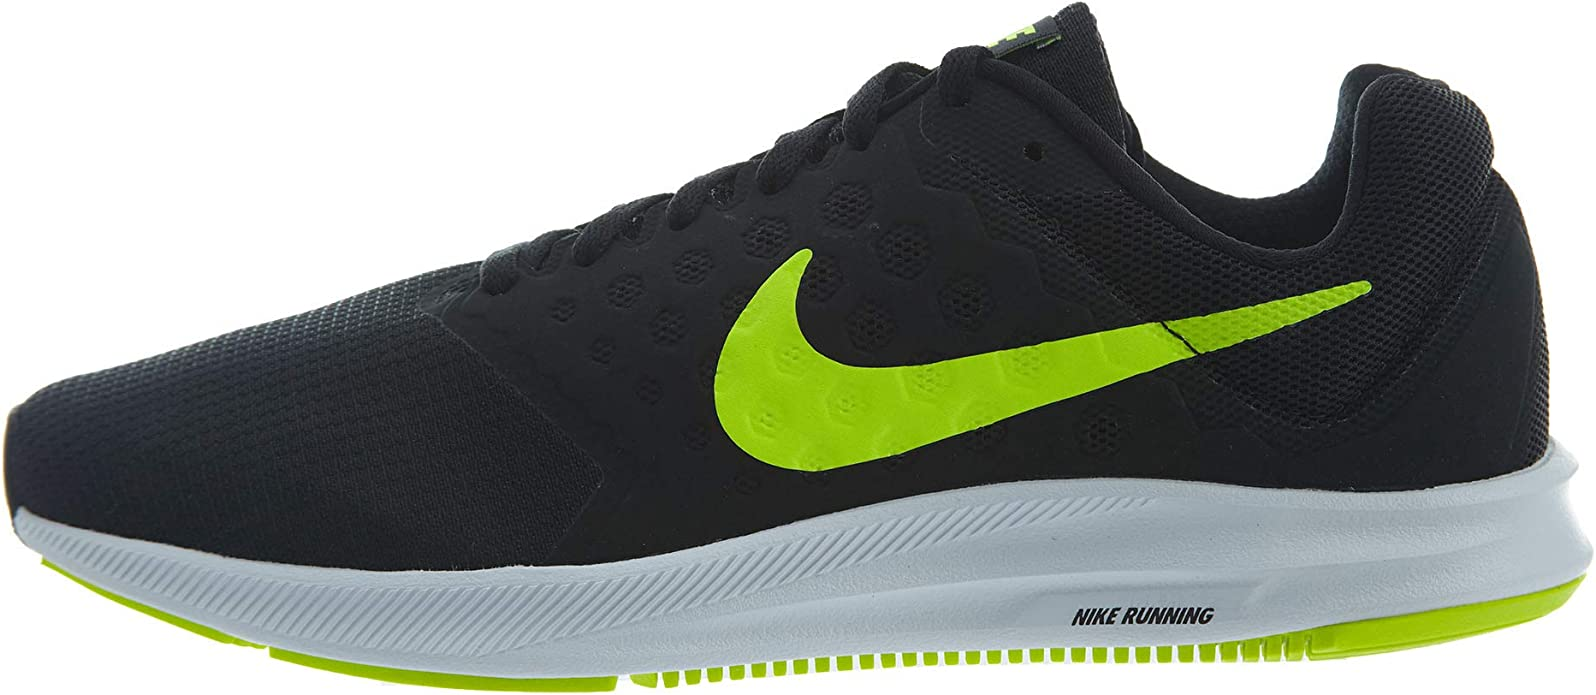 Nike Downshifter 7, Zapatillas de Running Hombre, Negro (Black/volt-white), 45 EU: Amazon.es: Zapatos y complementos